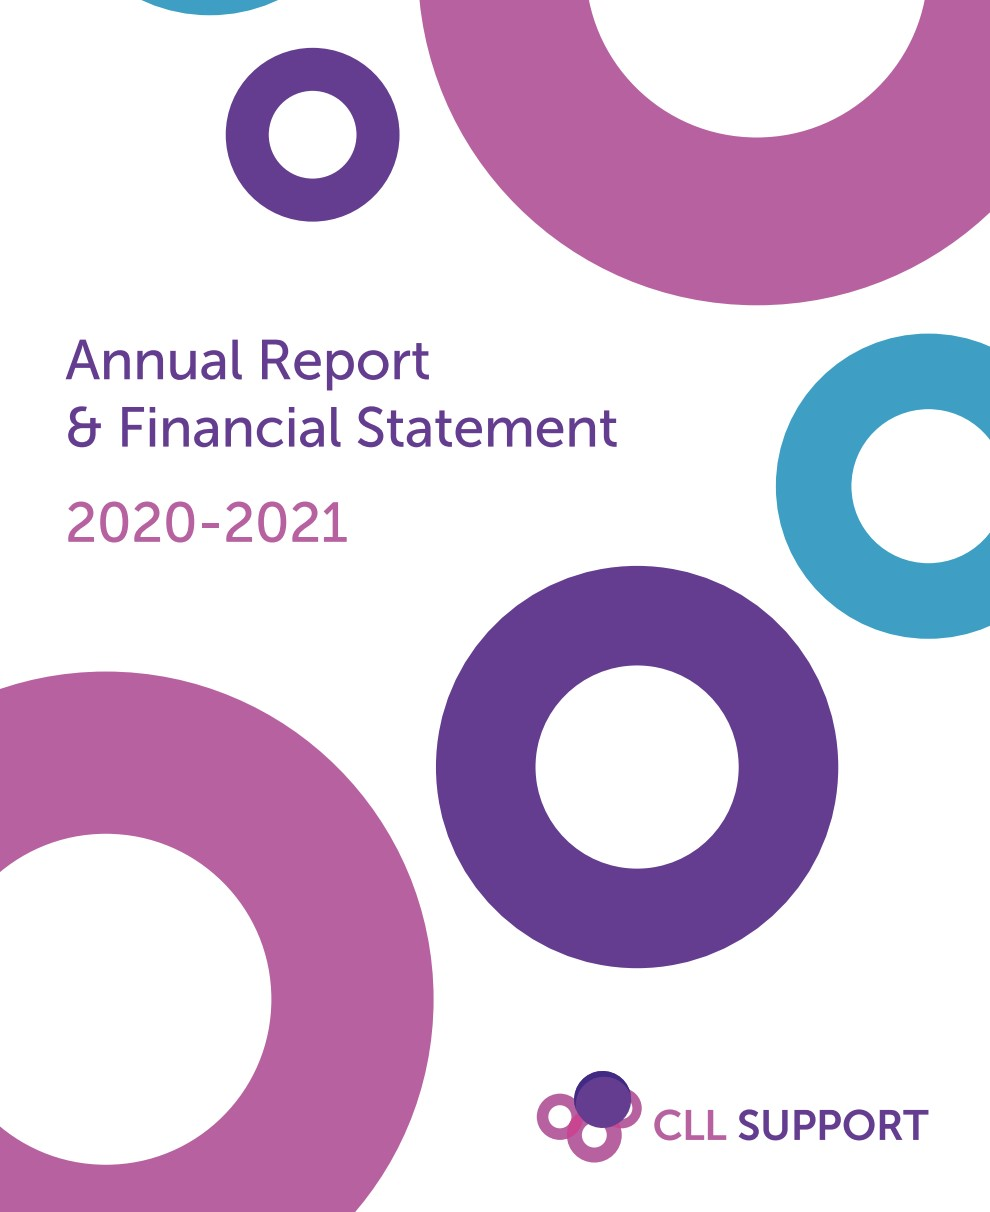 CLL Support Annual report cover